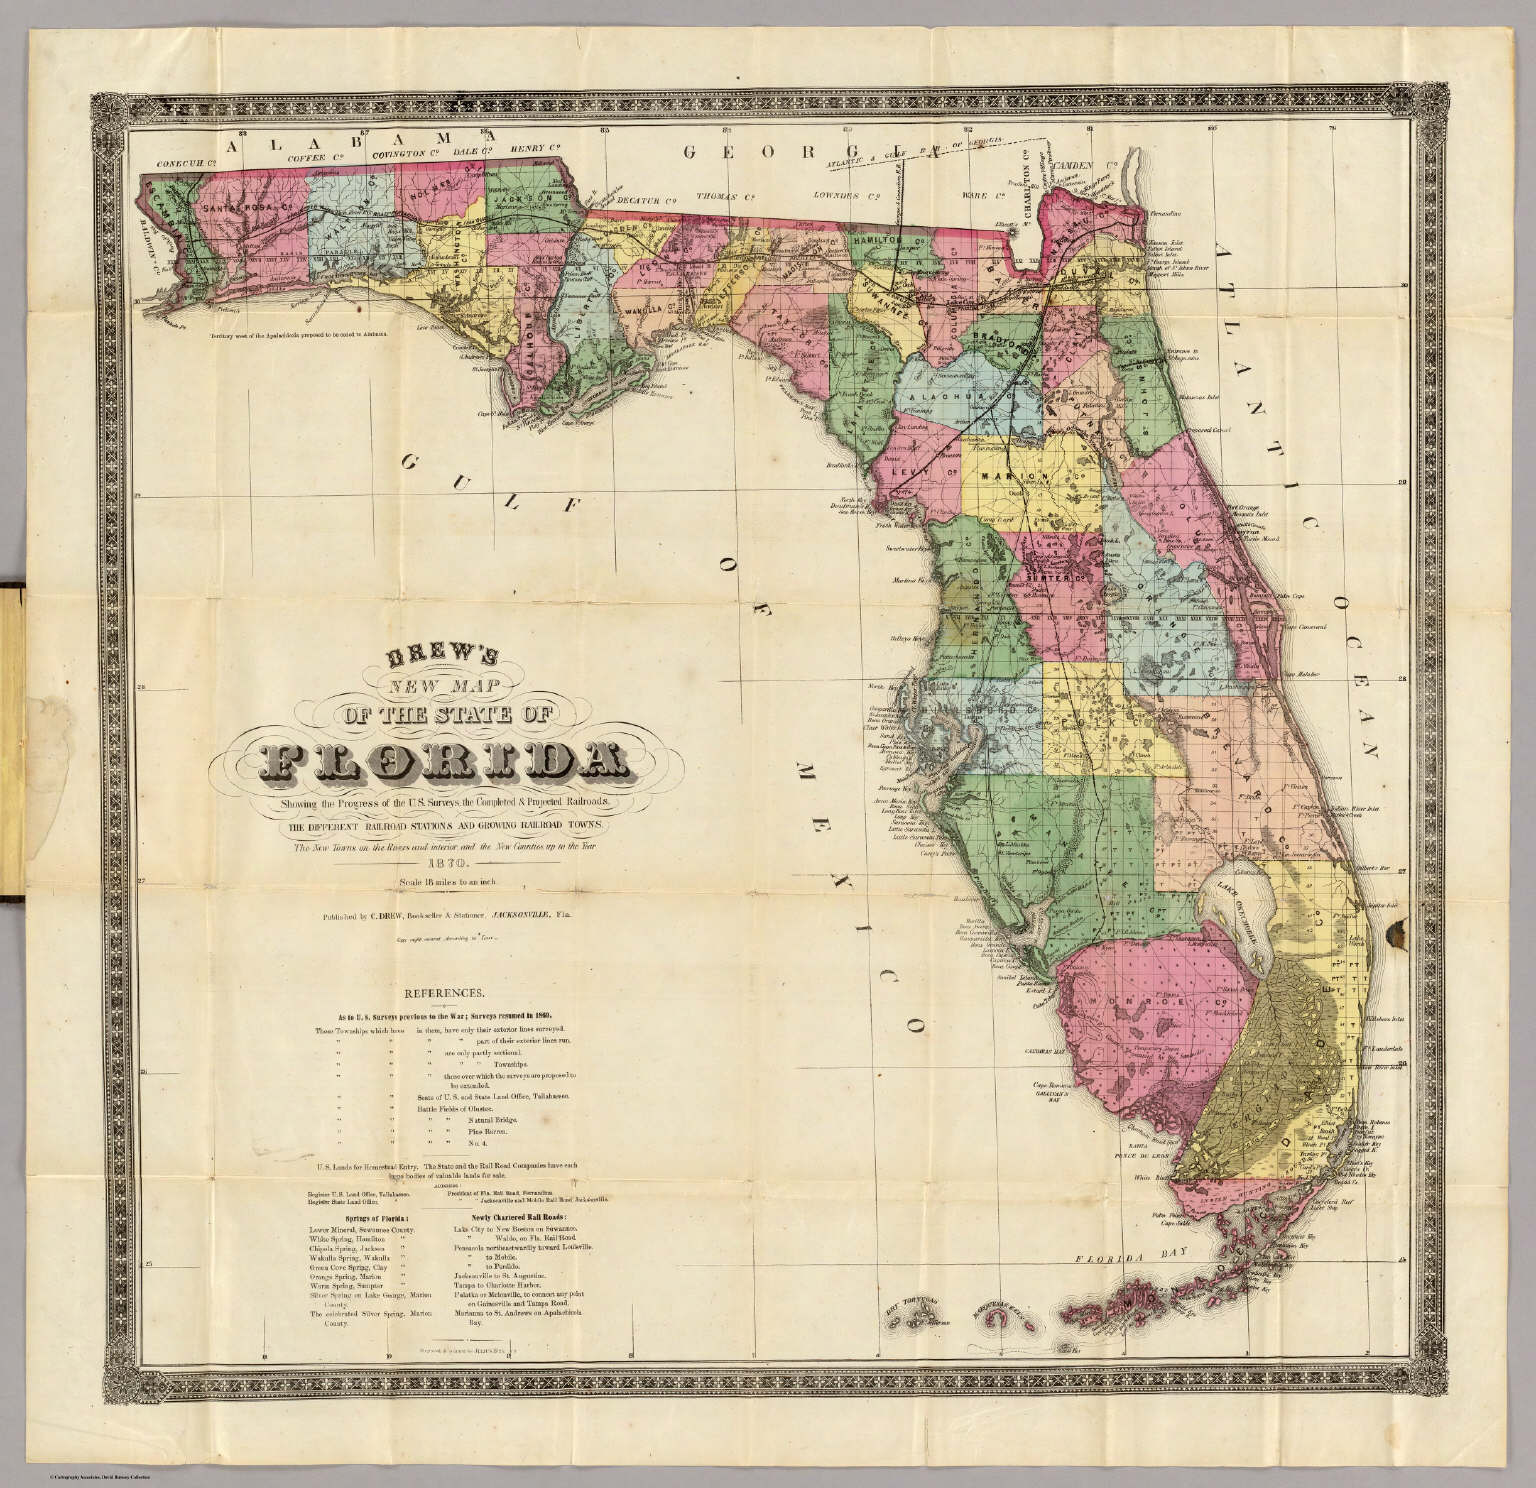 New Map Of The State Of Florida Drew Columbus - Florida map state